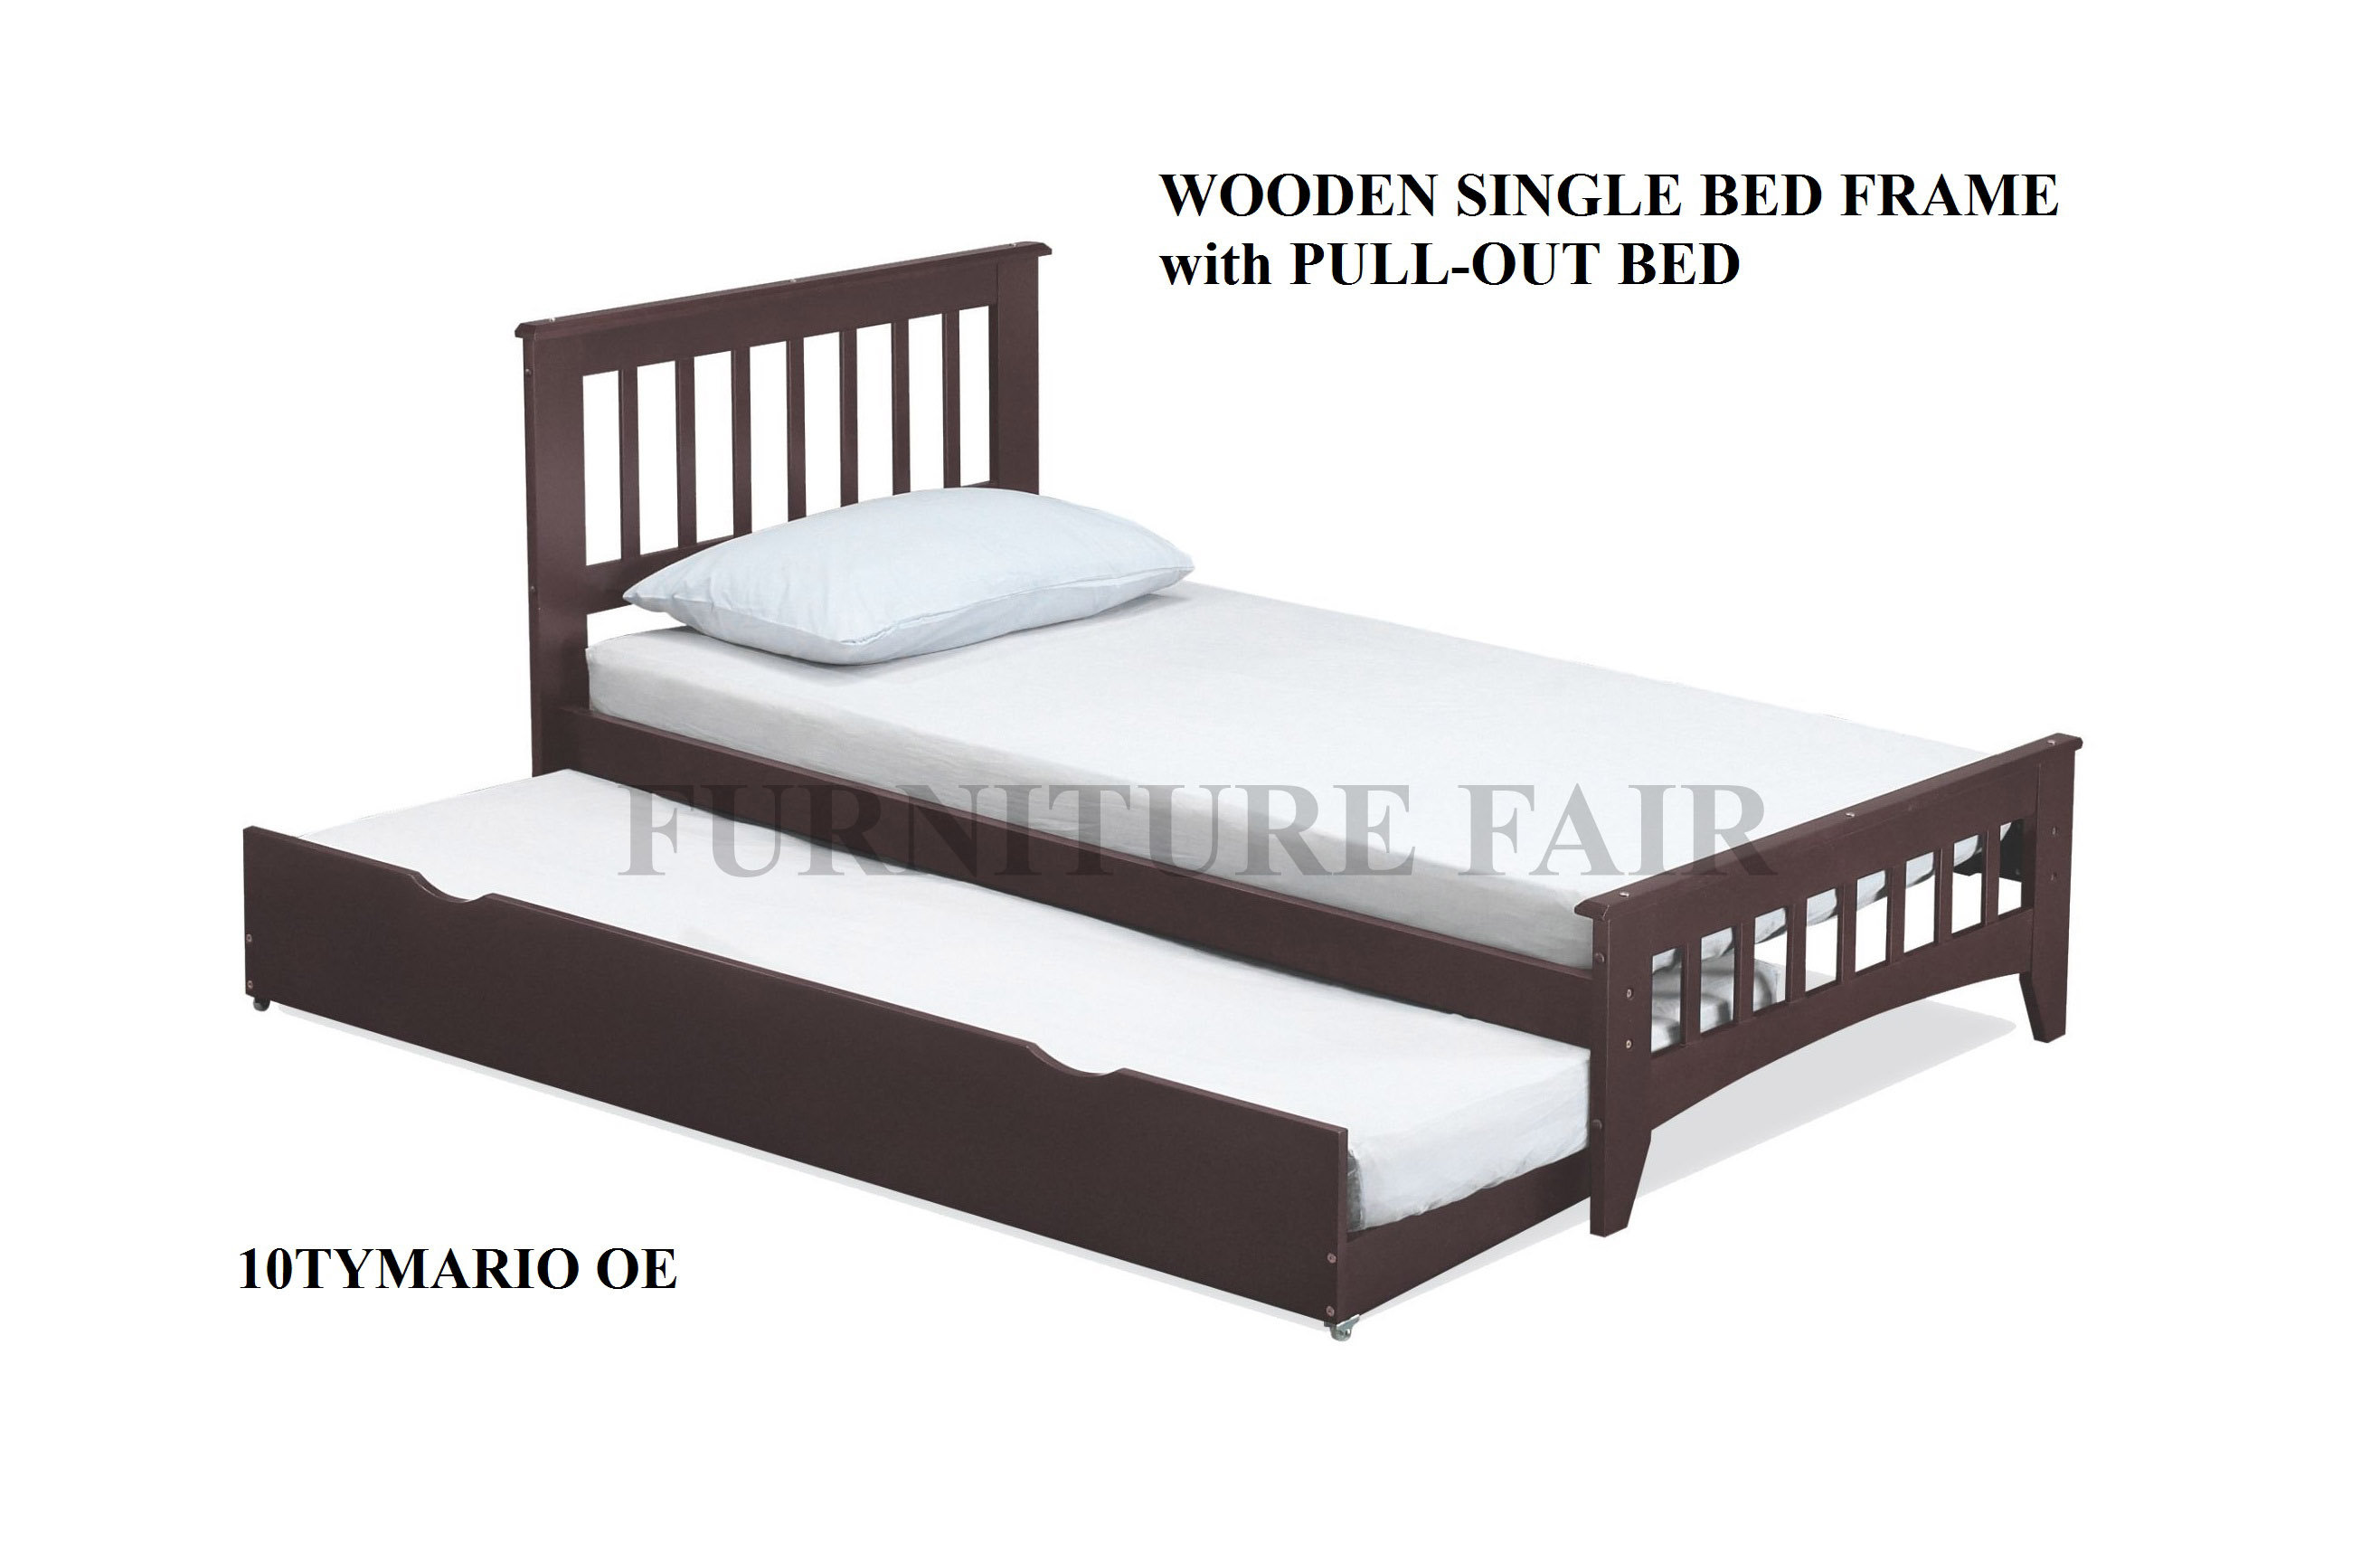 Wooden Sala Set Manila Bed Frame Single Size 10tymario Oe Furniture Fair